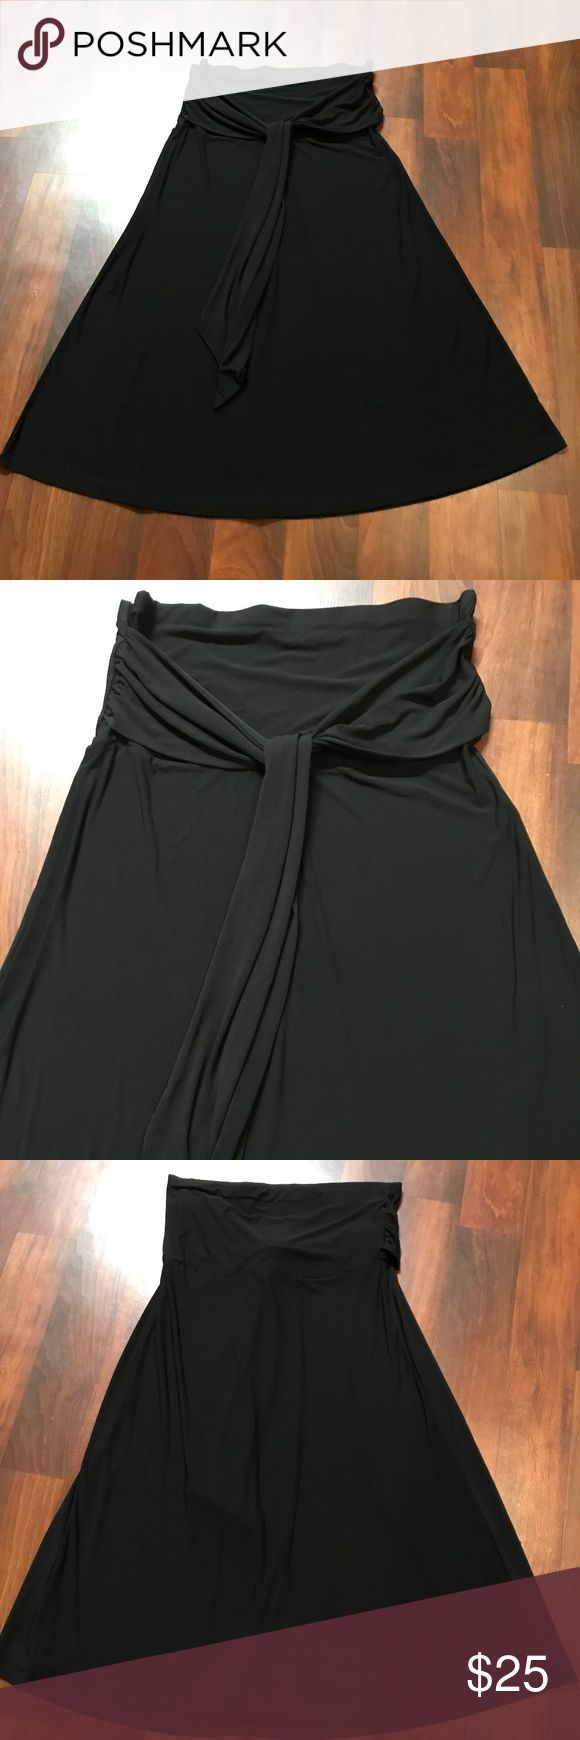 Lane Bryant Plus Size Black Maxi Skirt 18/20 Lane Bryant Plus Size Black Maxi Skirt 18/20  Plus Size Black Maxi Skirt with attached belt. Could be used as a bathing suit cover up too. Size 18/20 Brand Lane Bryant Fabric Polyster Spandex with stretch  Measurements Length: 43 inches Waist: 19 inches laying flat Hips: 20 inches laying flat  * Excellent condition with no sign of wear, tear, or stains. * Smoke Free Home * Pet Free Home * Daily Shipper * Save with bundle discount! * Open to…